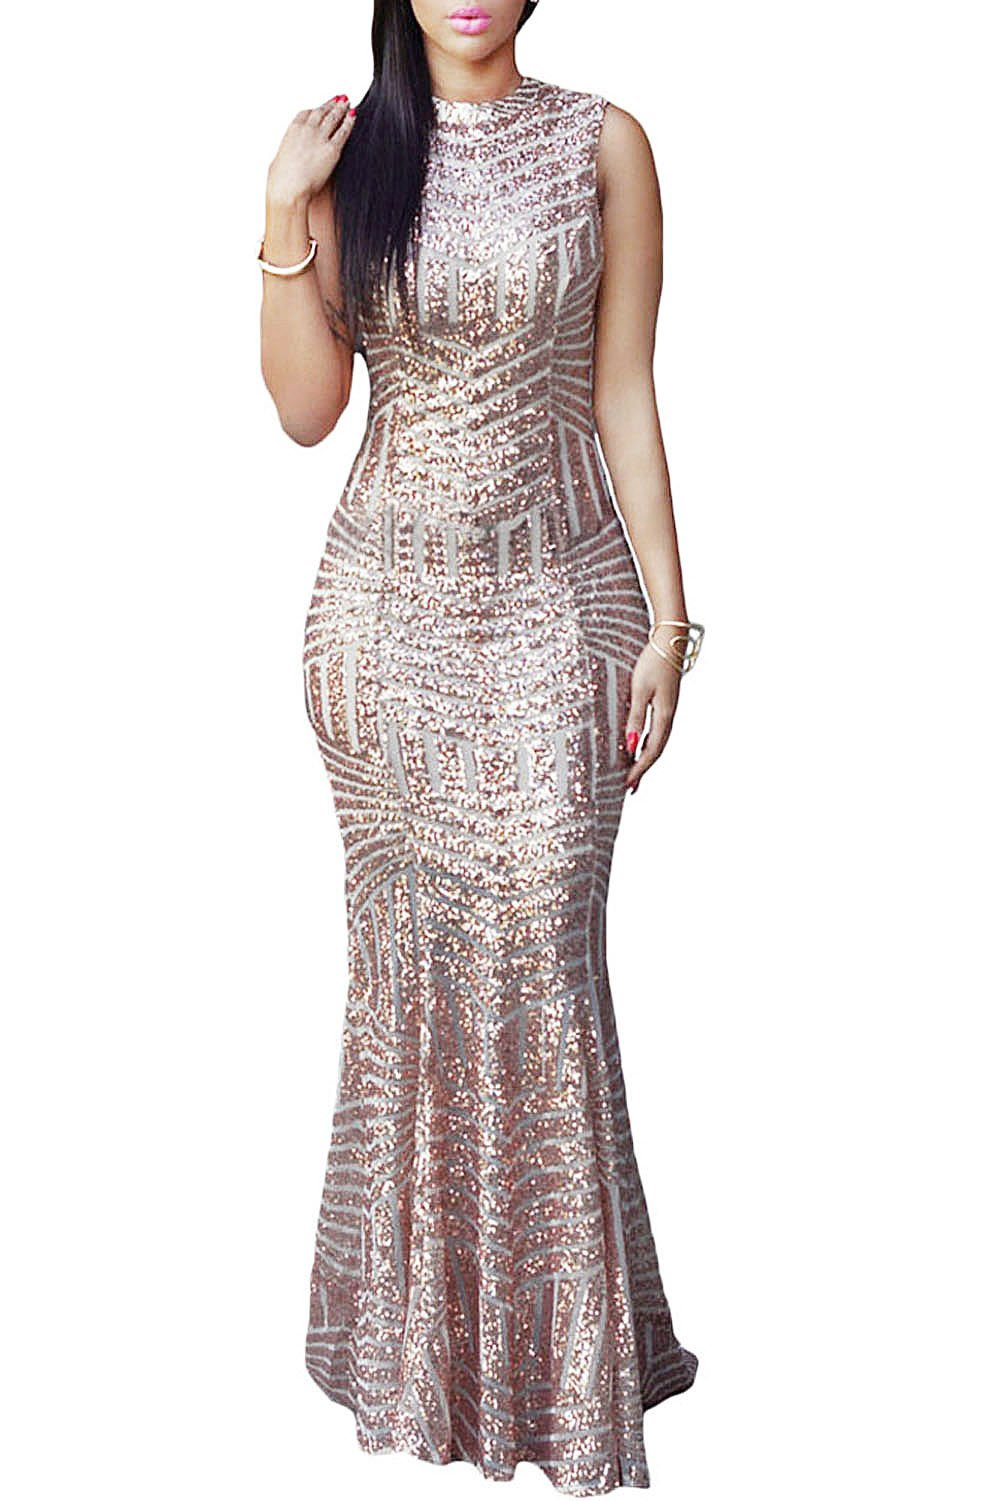 LOSRLY Womens Sequin Maxi Long Party Cocktail Club Formal Evening Prom Mermaid Dress Prime Gold S 4 6